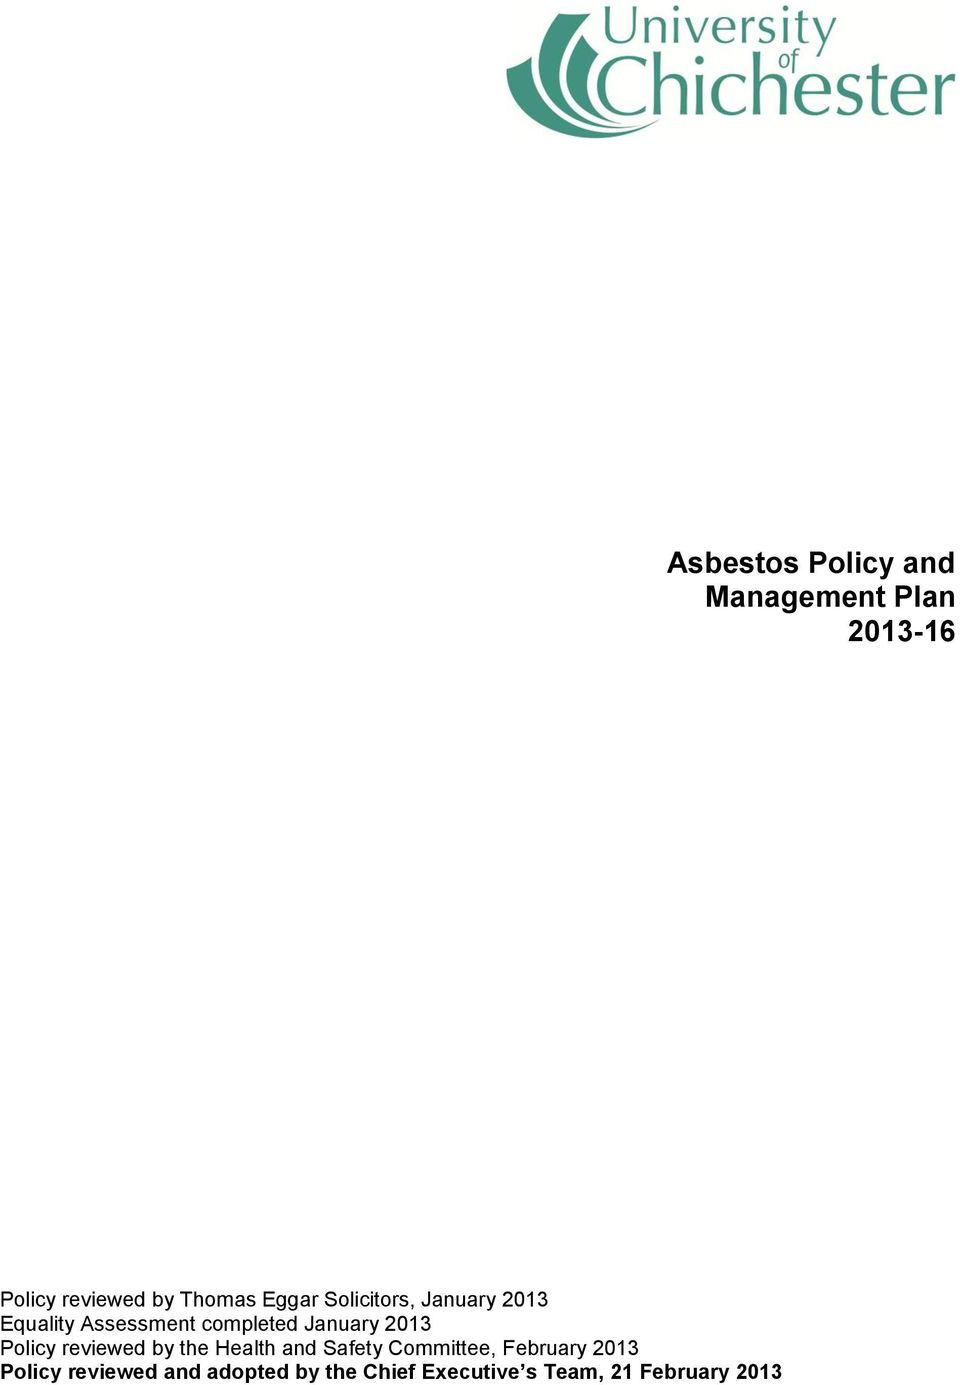 Safety Committee, February 2013 Policy reviewed and adopted by the